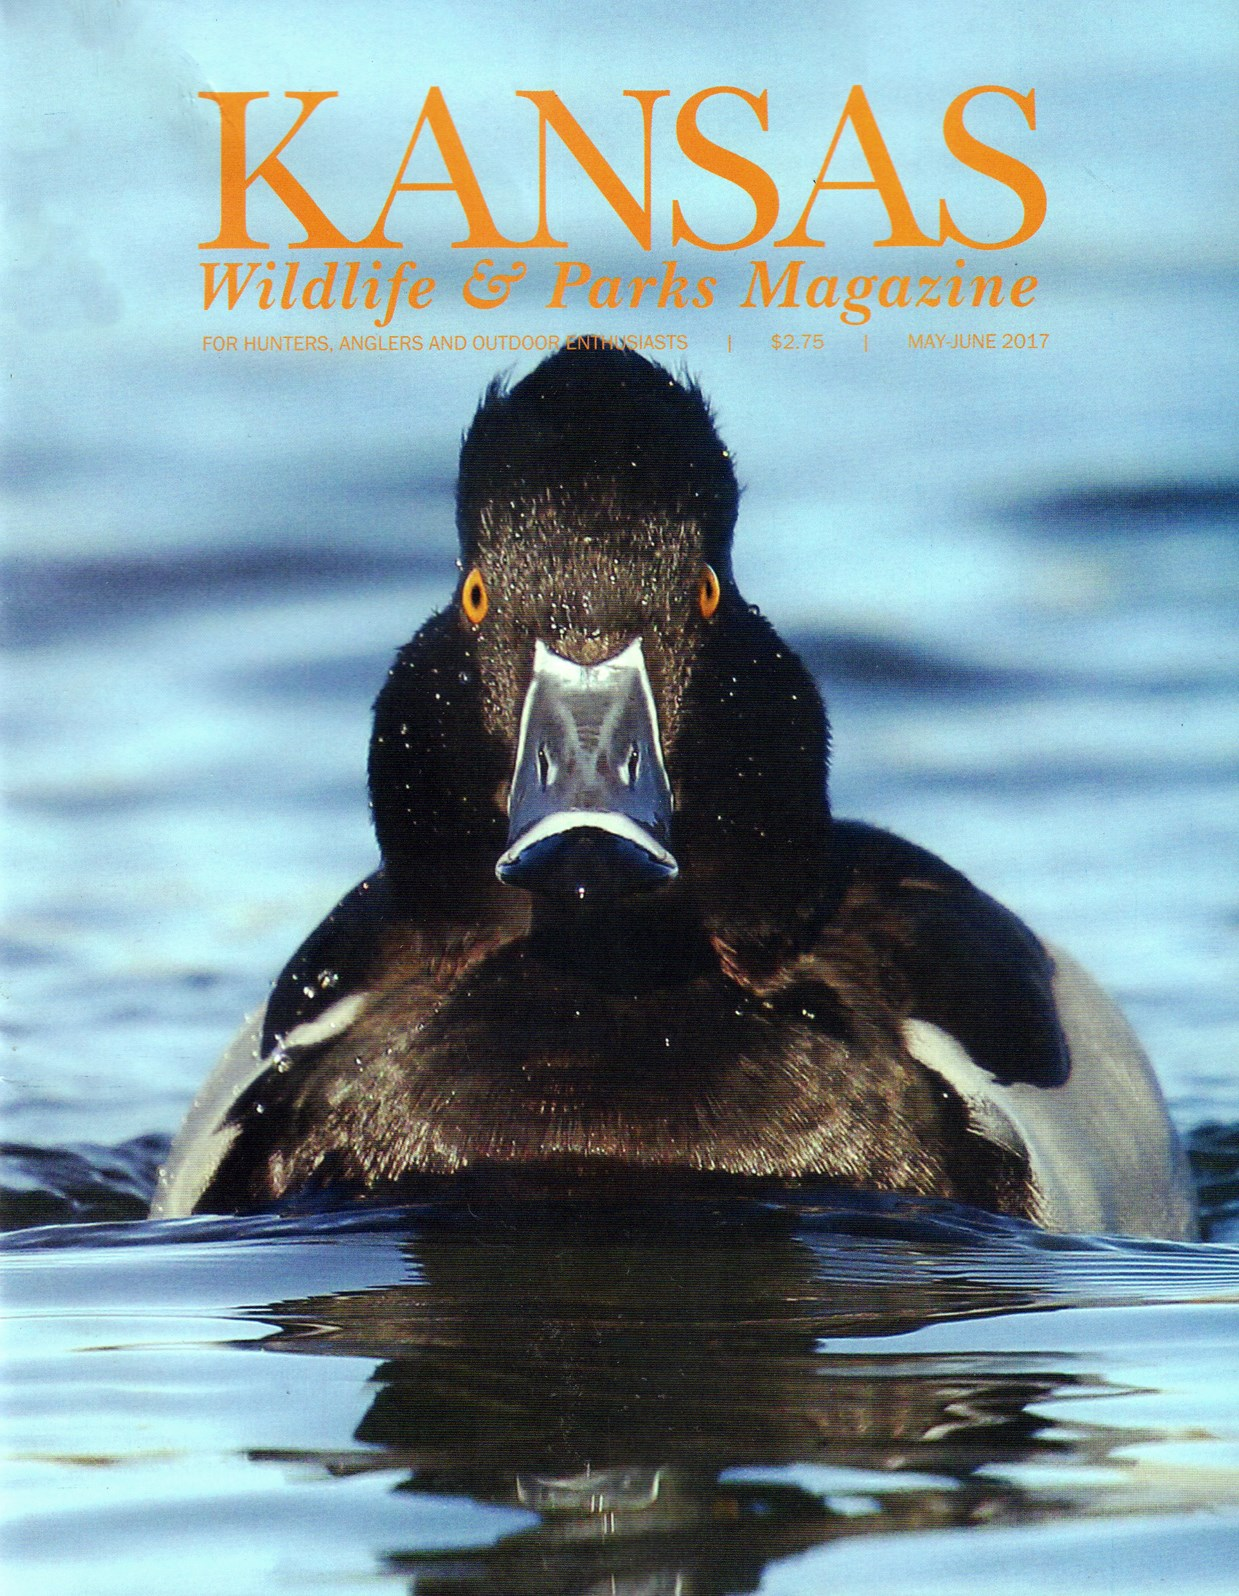 Best Price for Kansas Wildlife & Parks Magazine Subscription